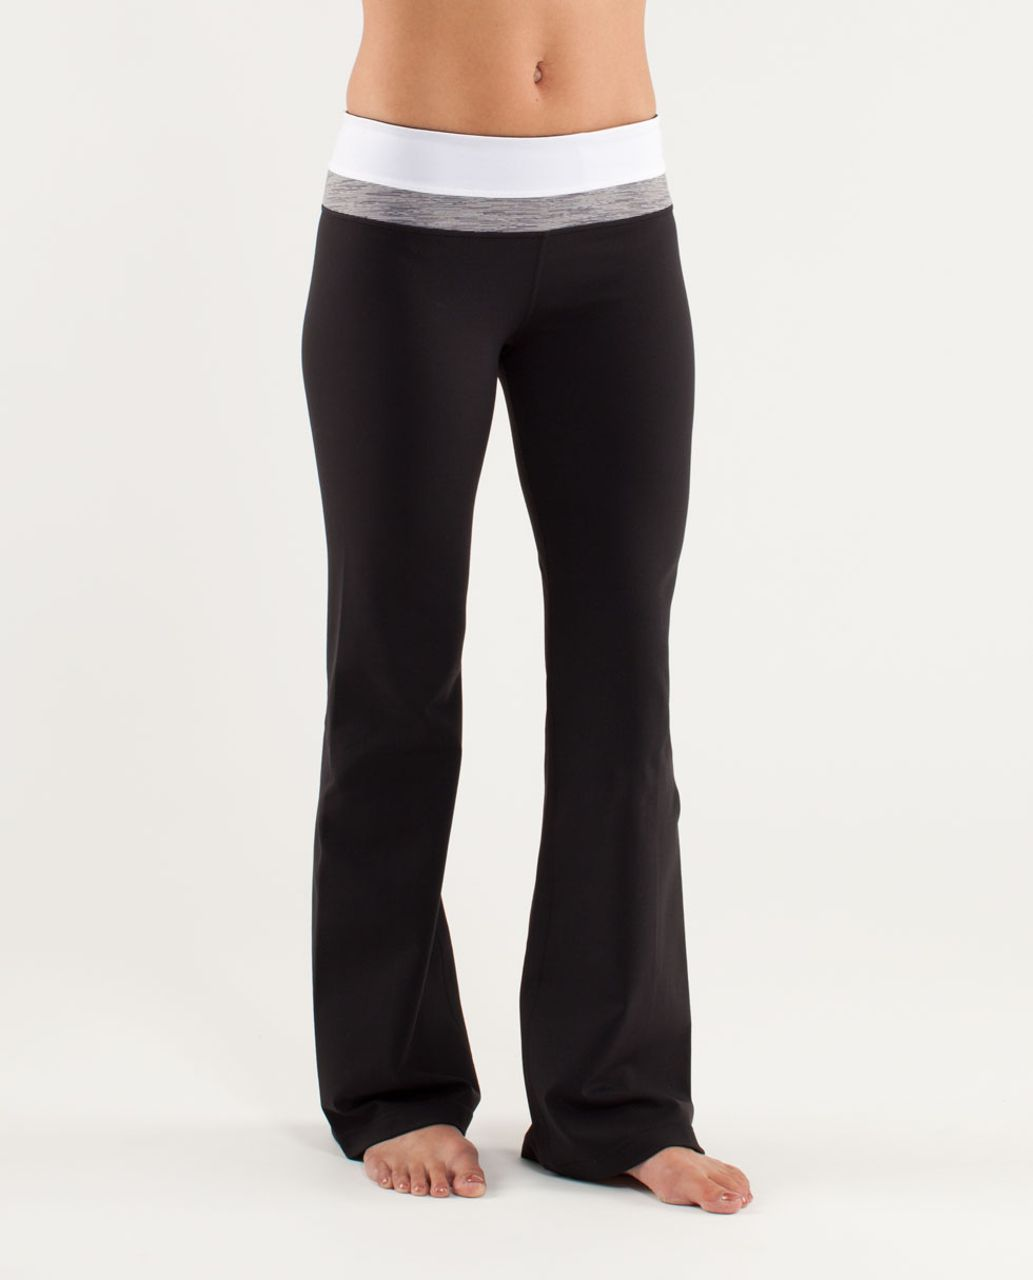 Lululemon Groove Pant (Regular) - Black /  White /  Wee Are From Space Coal Fossil